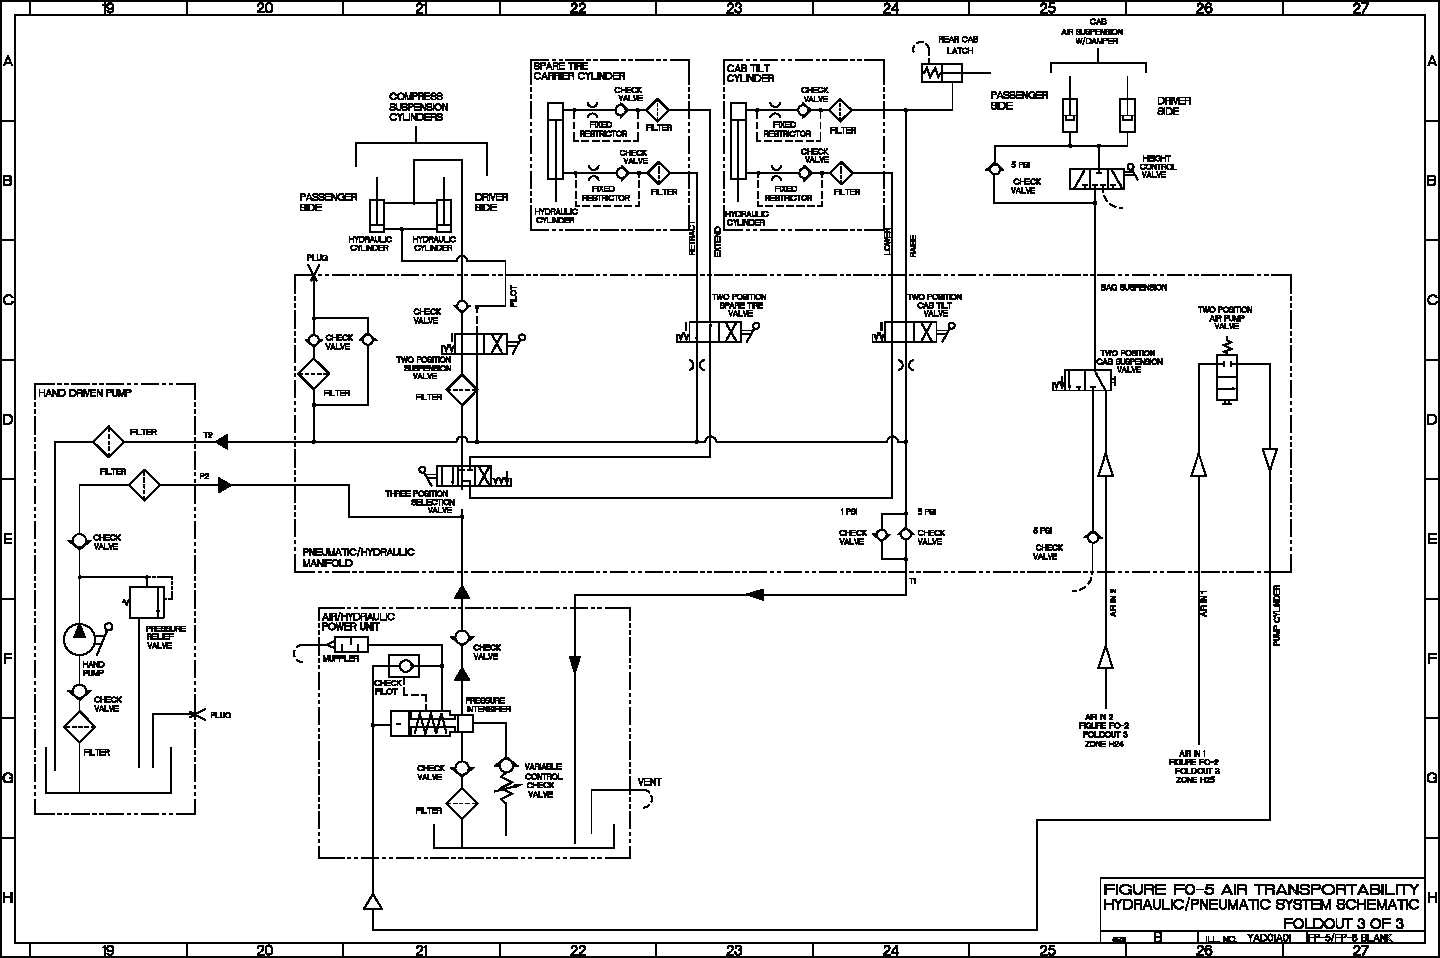 TM 9 2320 365 20 4_939_1 air transportability hydraulic pneumatic system schematic tm 9 wiring diagram for m1078 lmtv at fashall.co